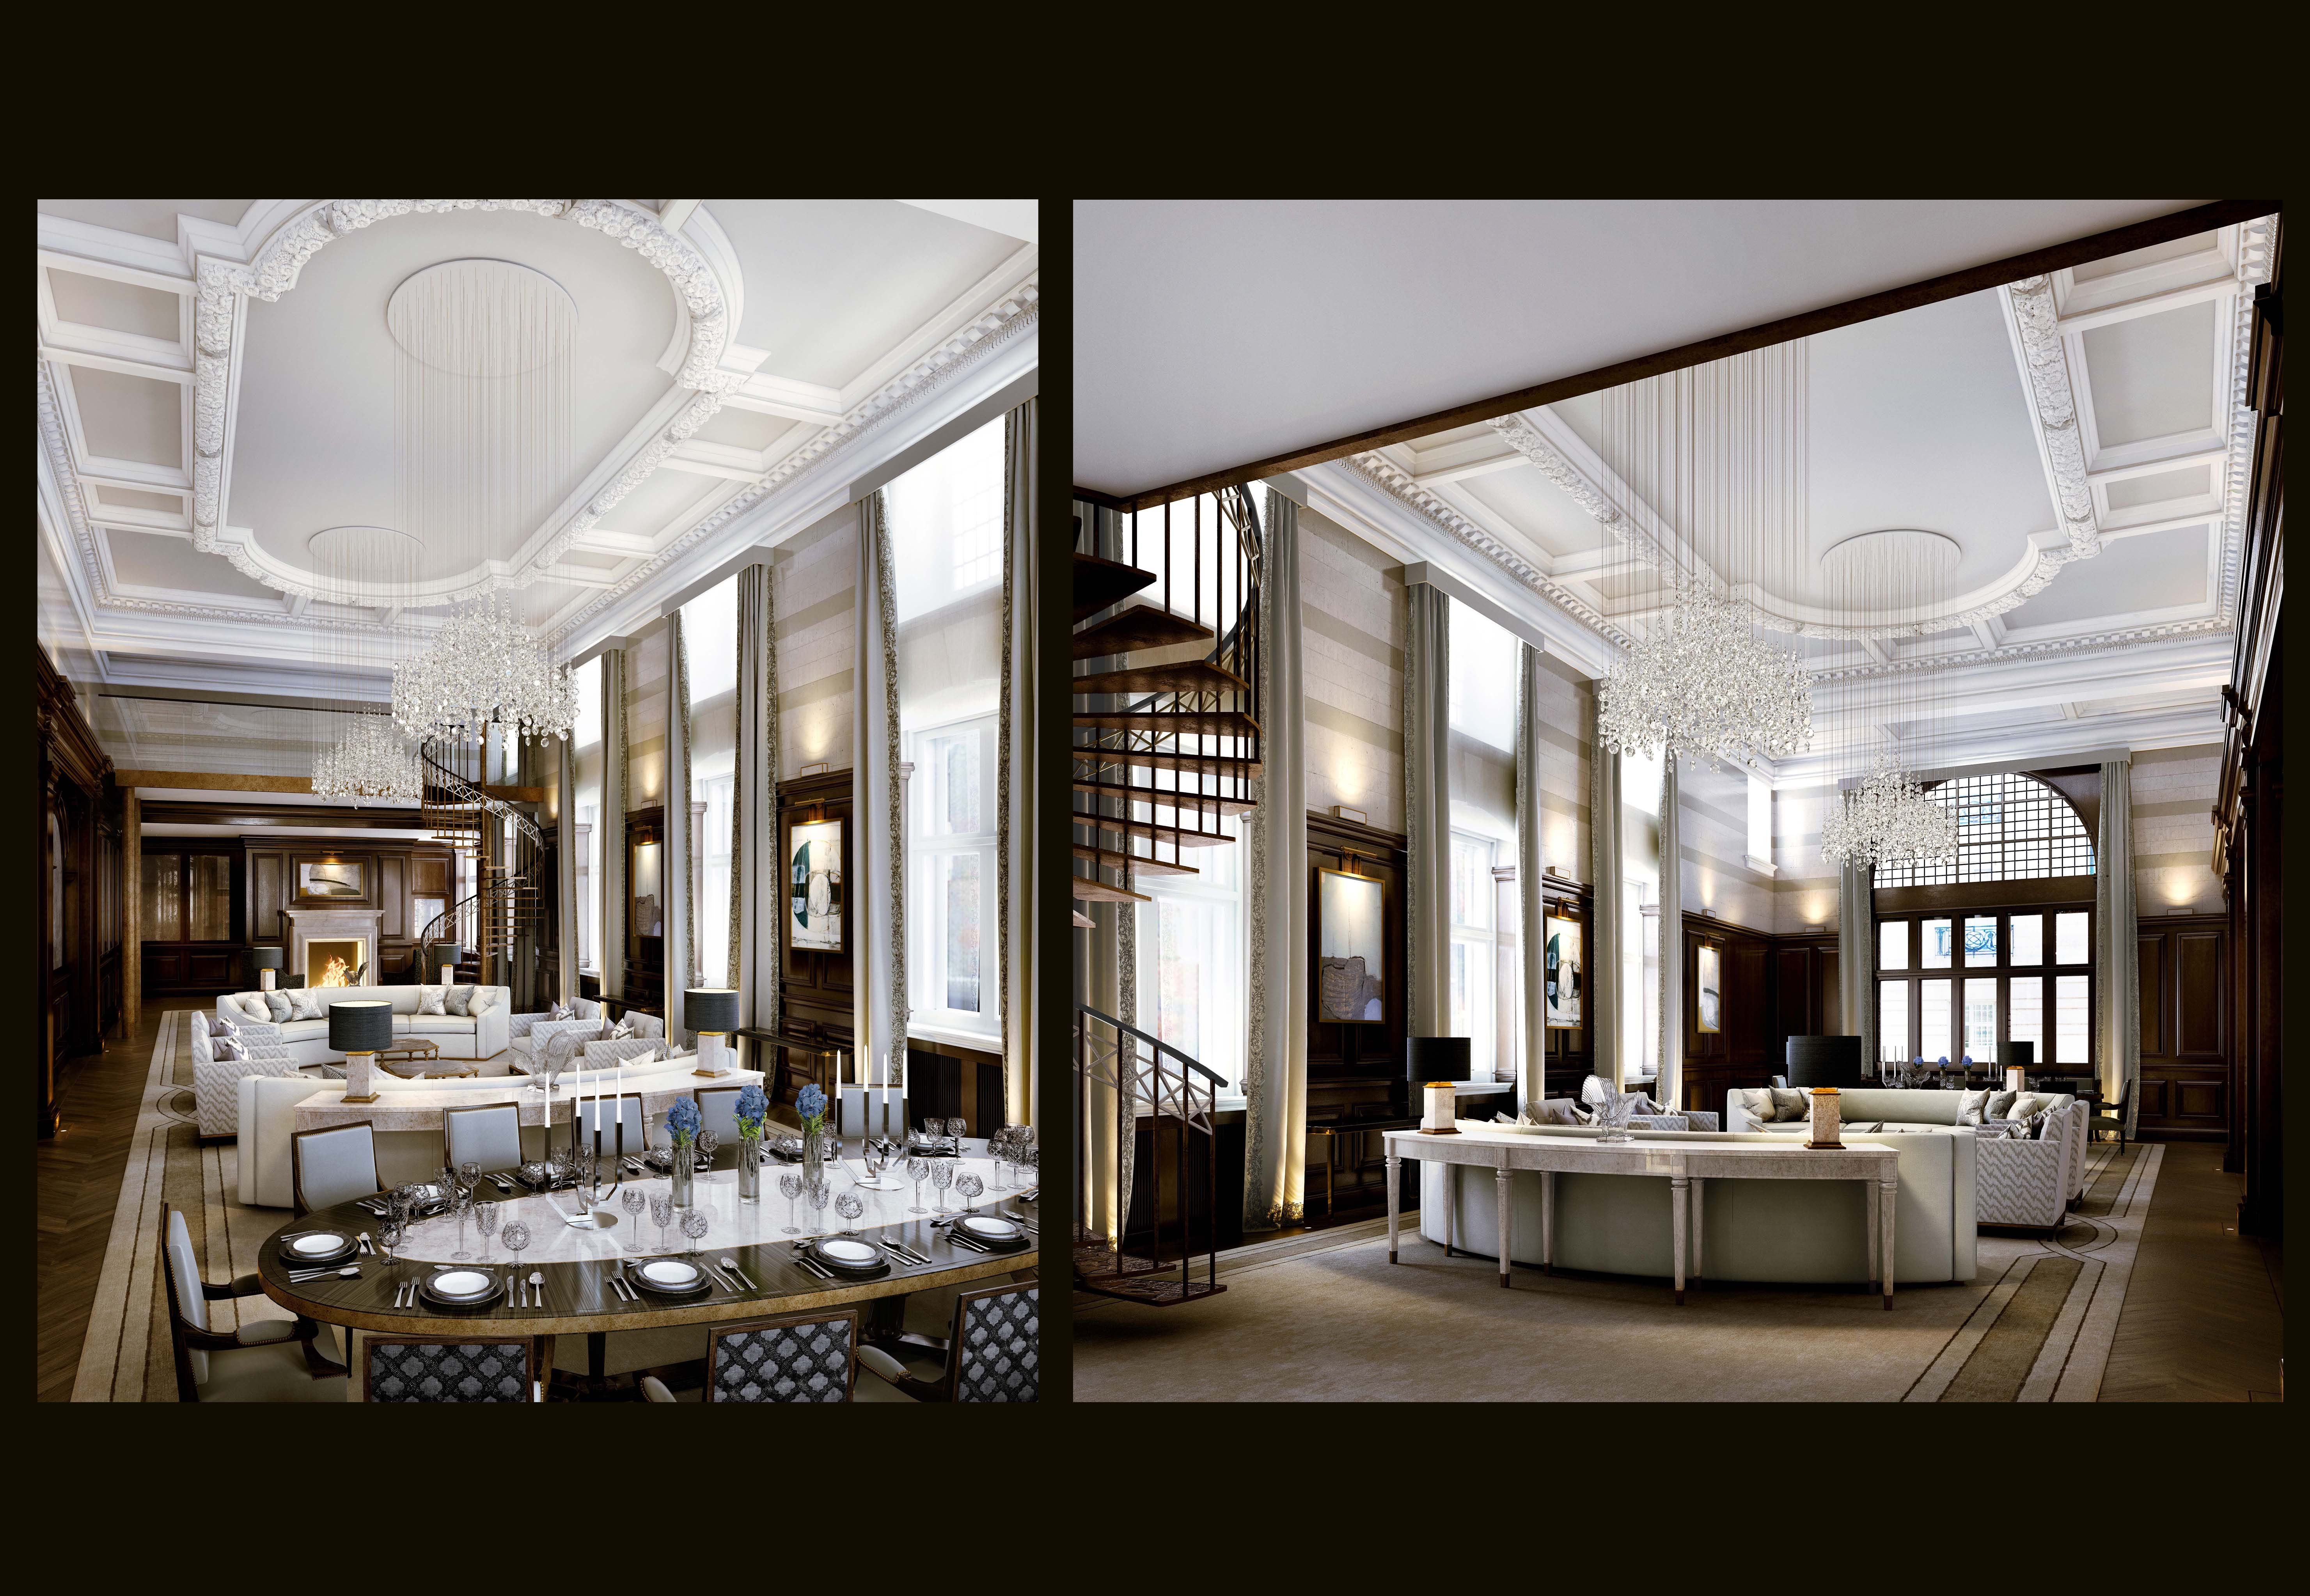 Architecture and interior design firms london for Design firms london